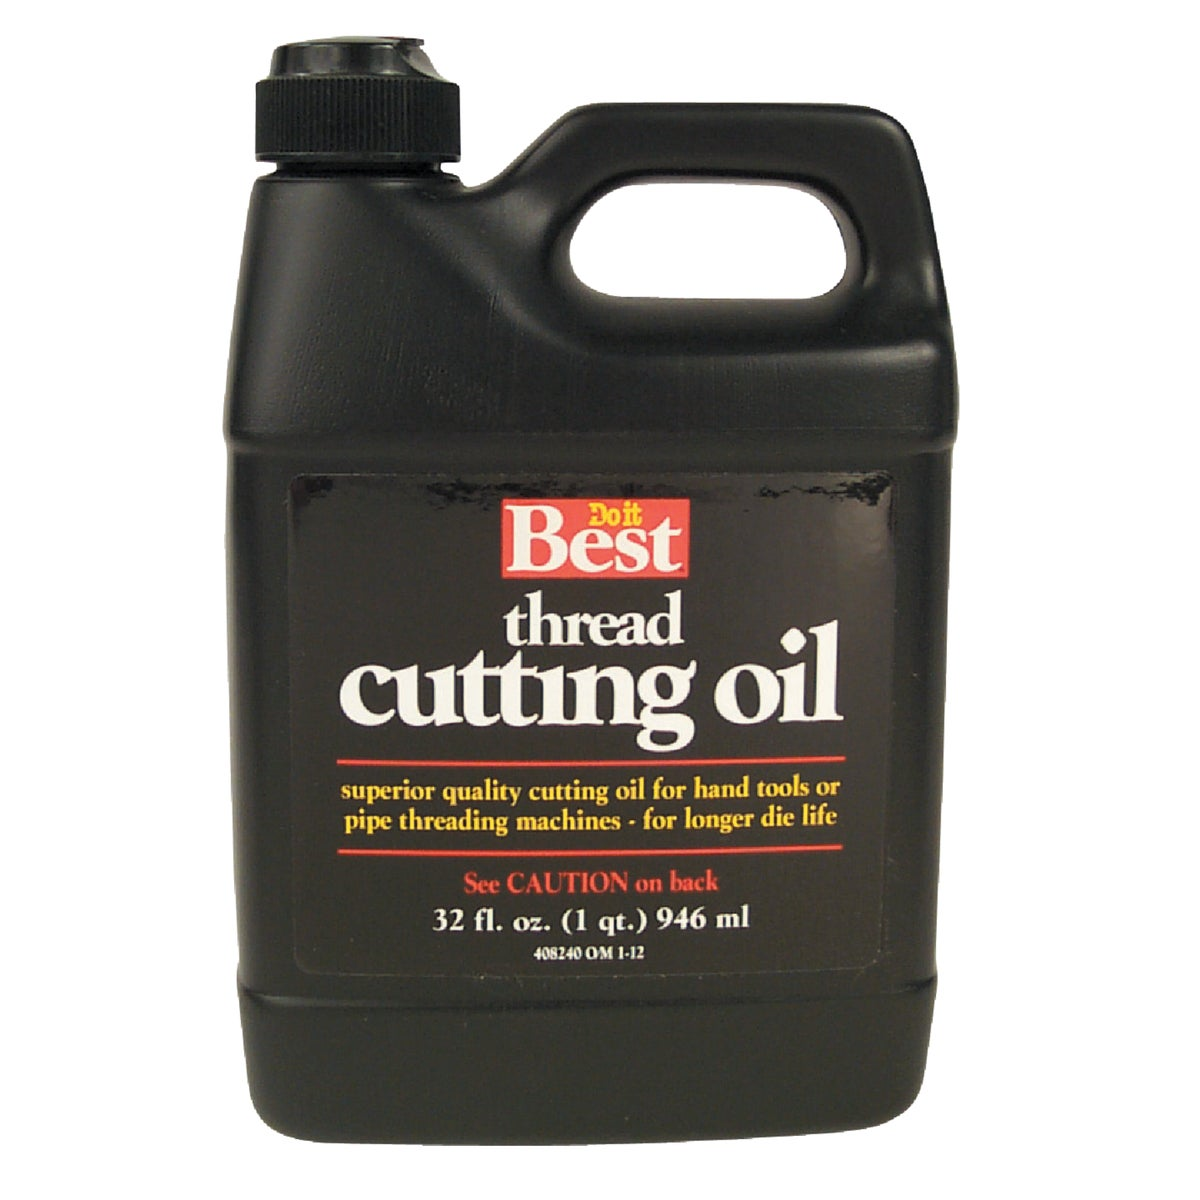 QUART THREADCUT OIL - 016120 by Wm H Harvey Co